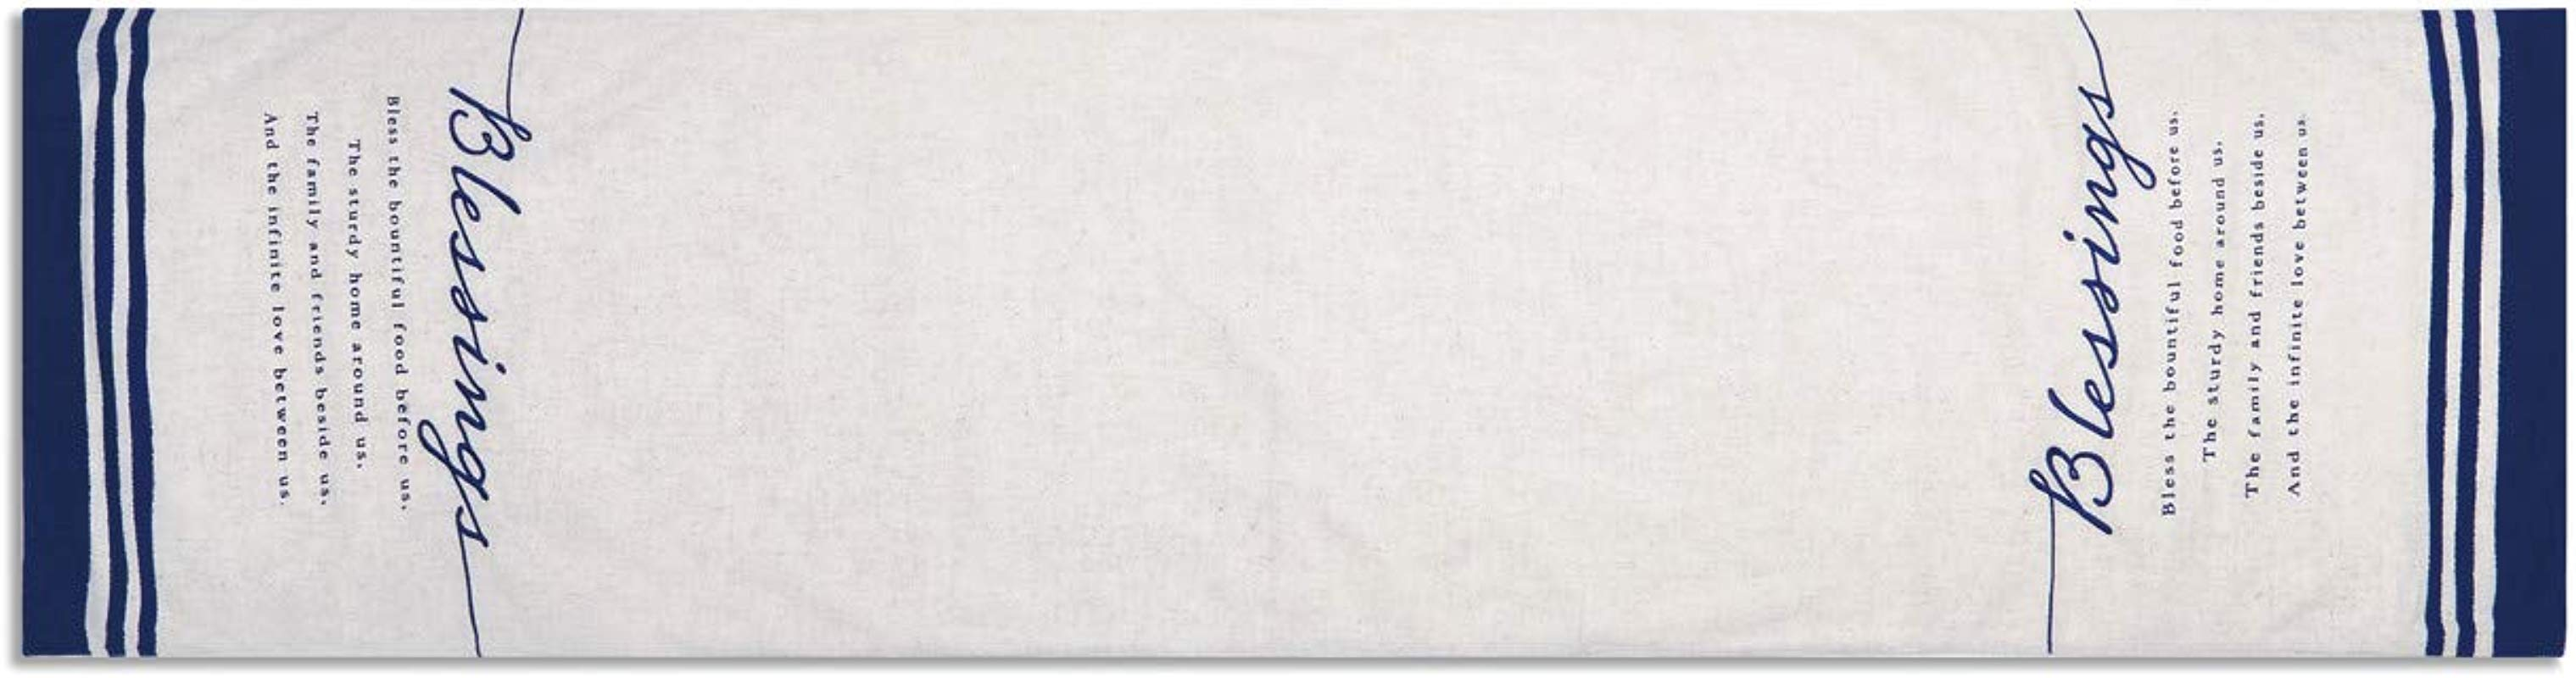 Blessings Bountiful Indigo Blue 72 X 16 Cotton And Linen Fabric Table Runner